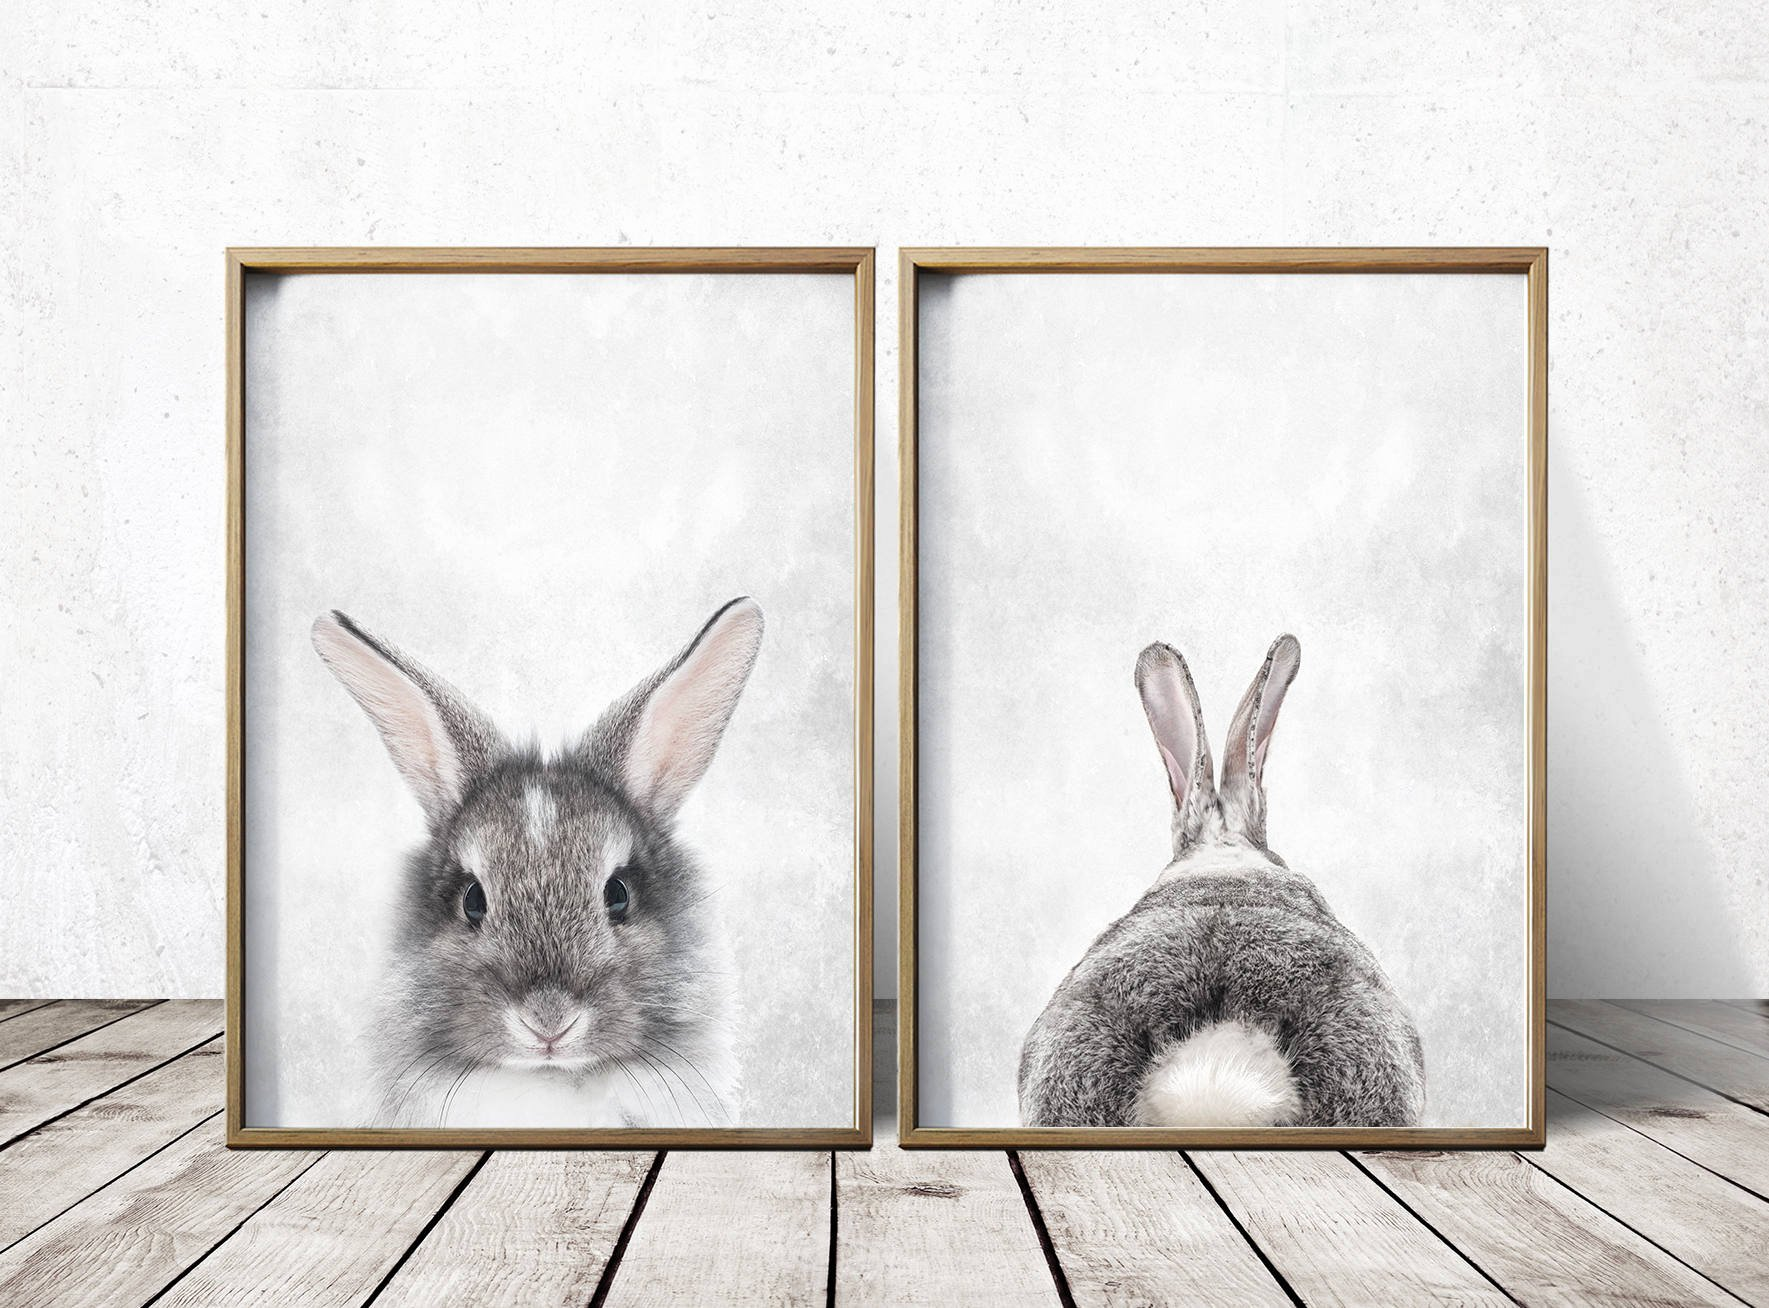 Pictures Of Bunnies to Print Unique Nursery Wall Art Nursery Decor Gray Rabbit Print Bunny